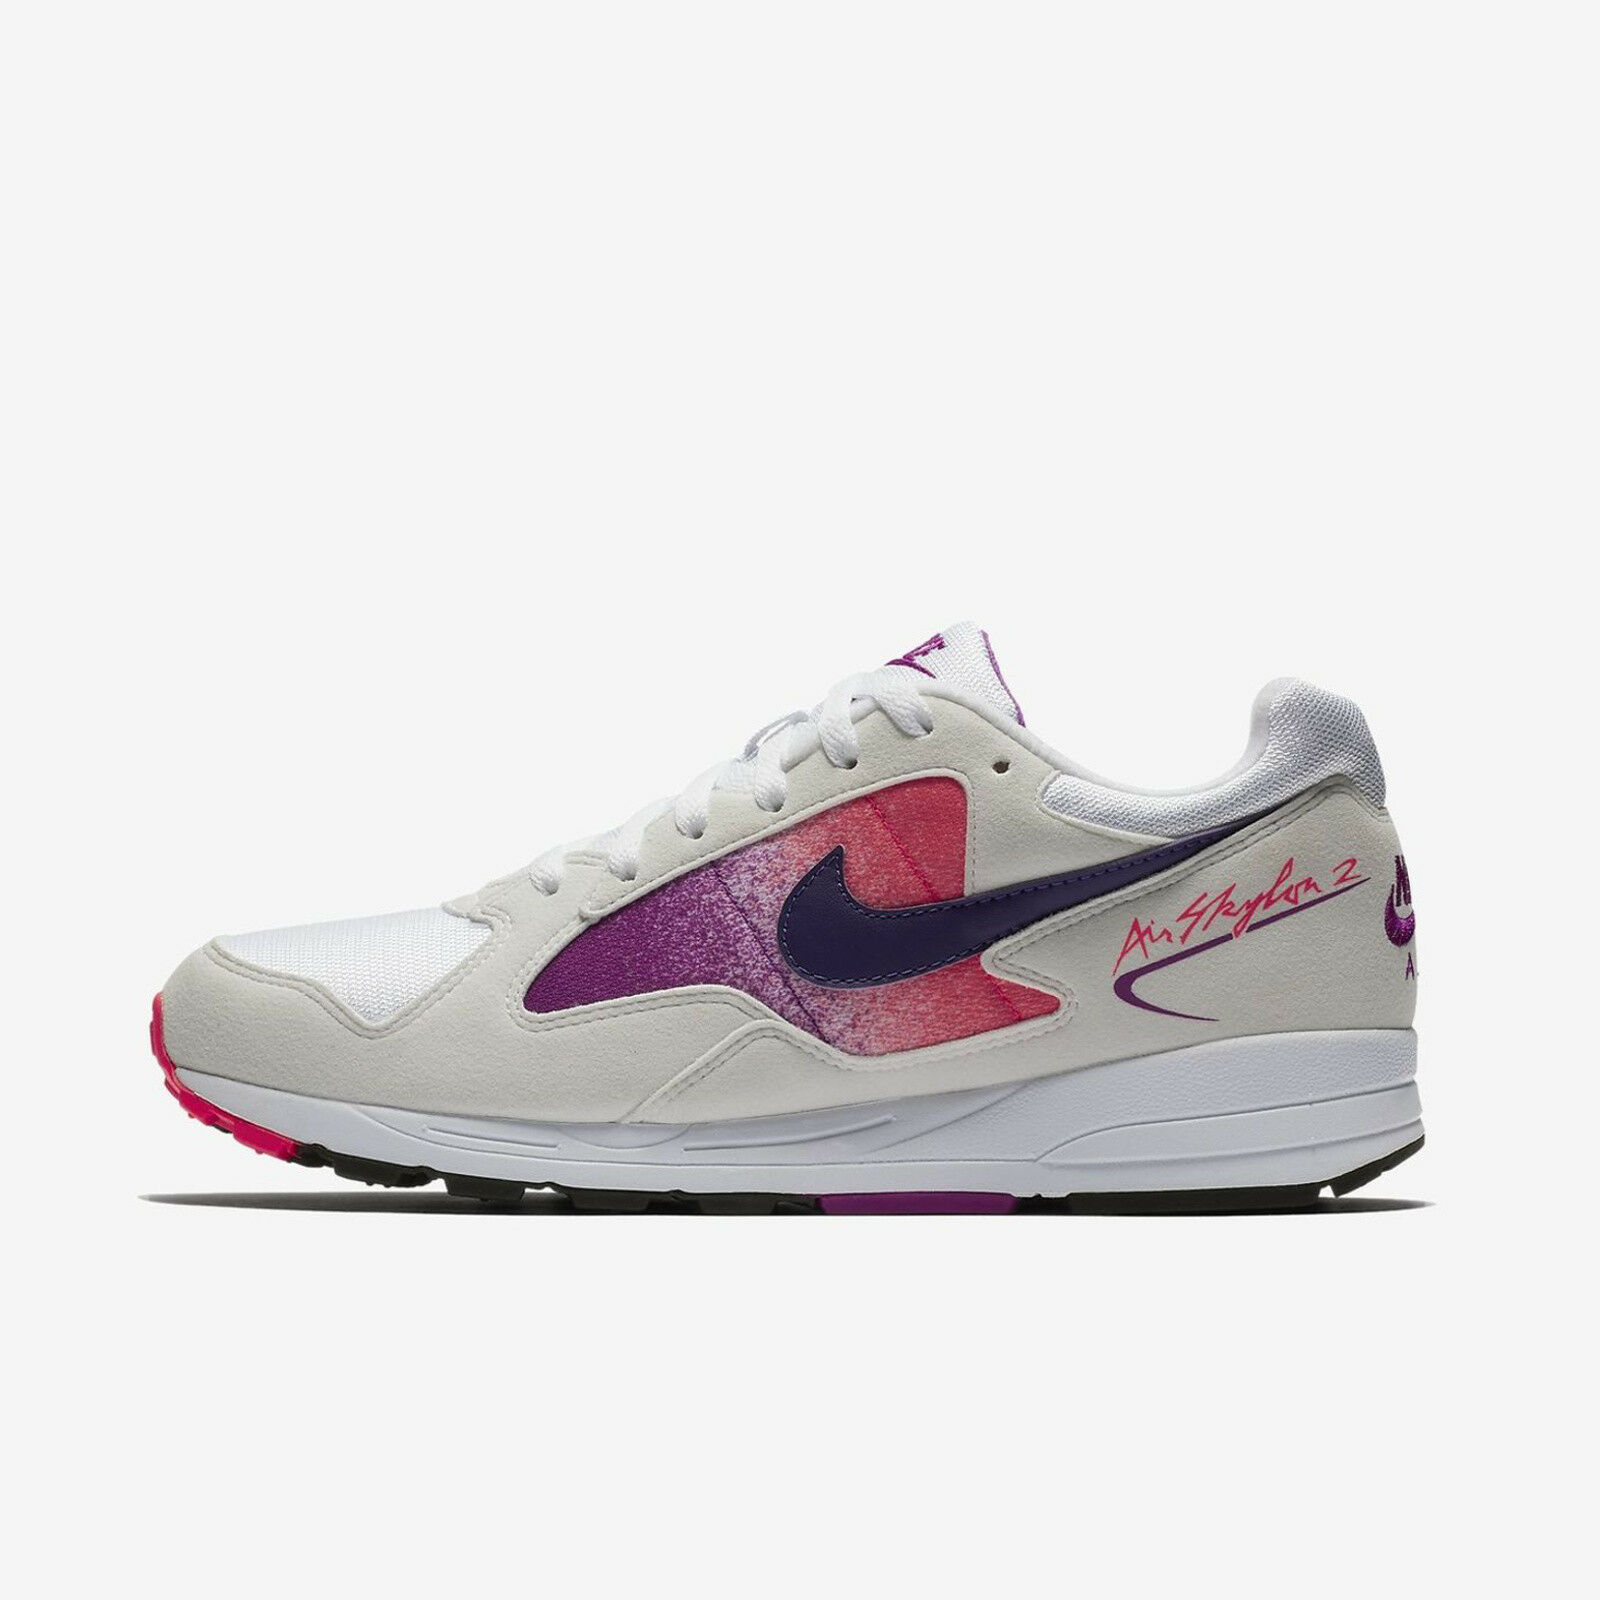 newest 94fcf 6171a NIKE AIR SKYLON II AO1551-103 blanc COURT PURPLE SOLAR rouge 2